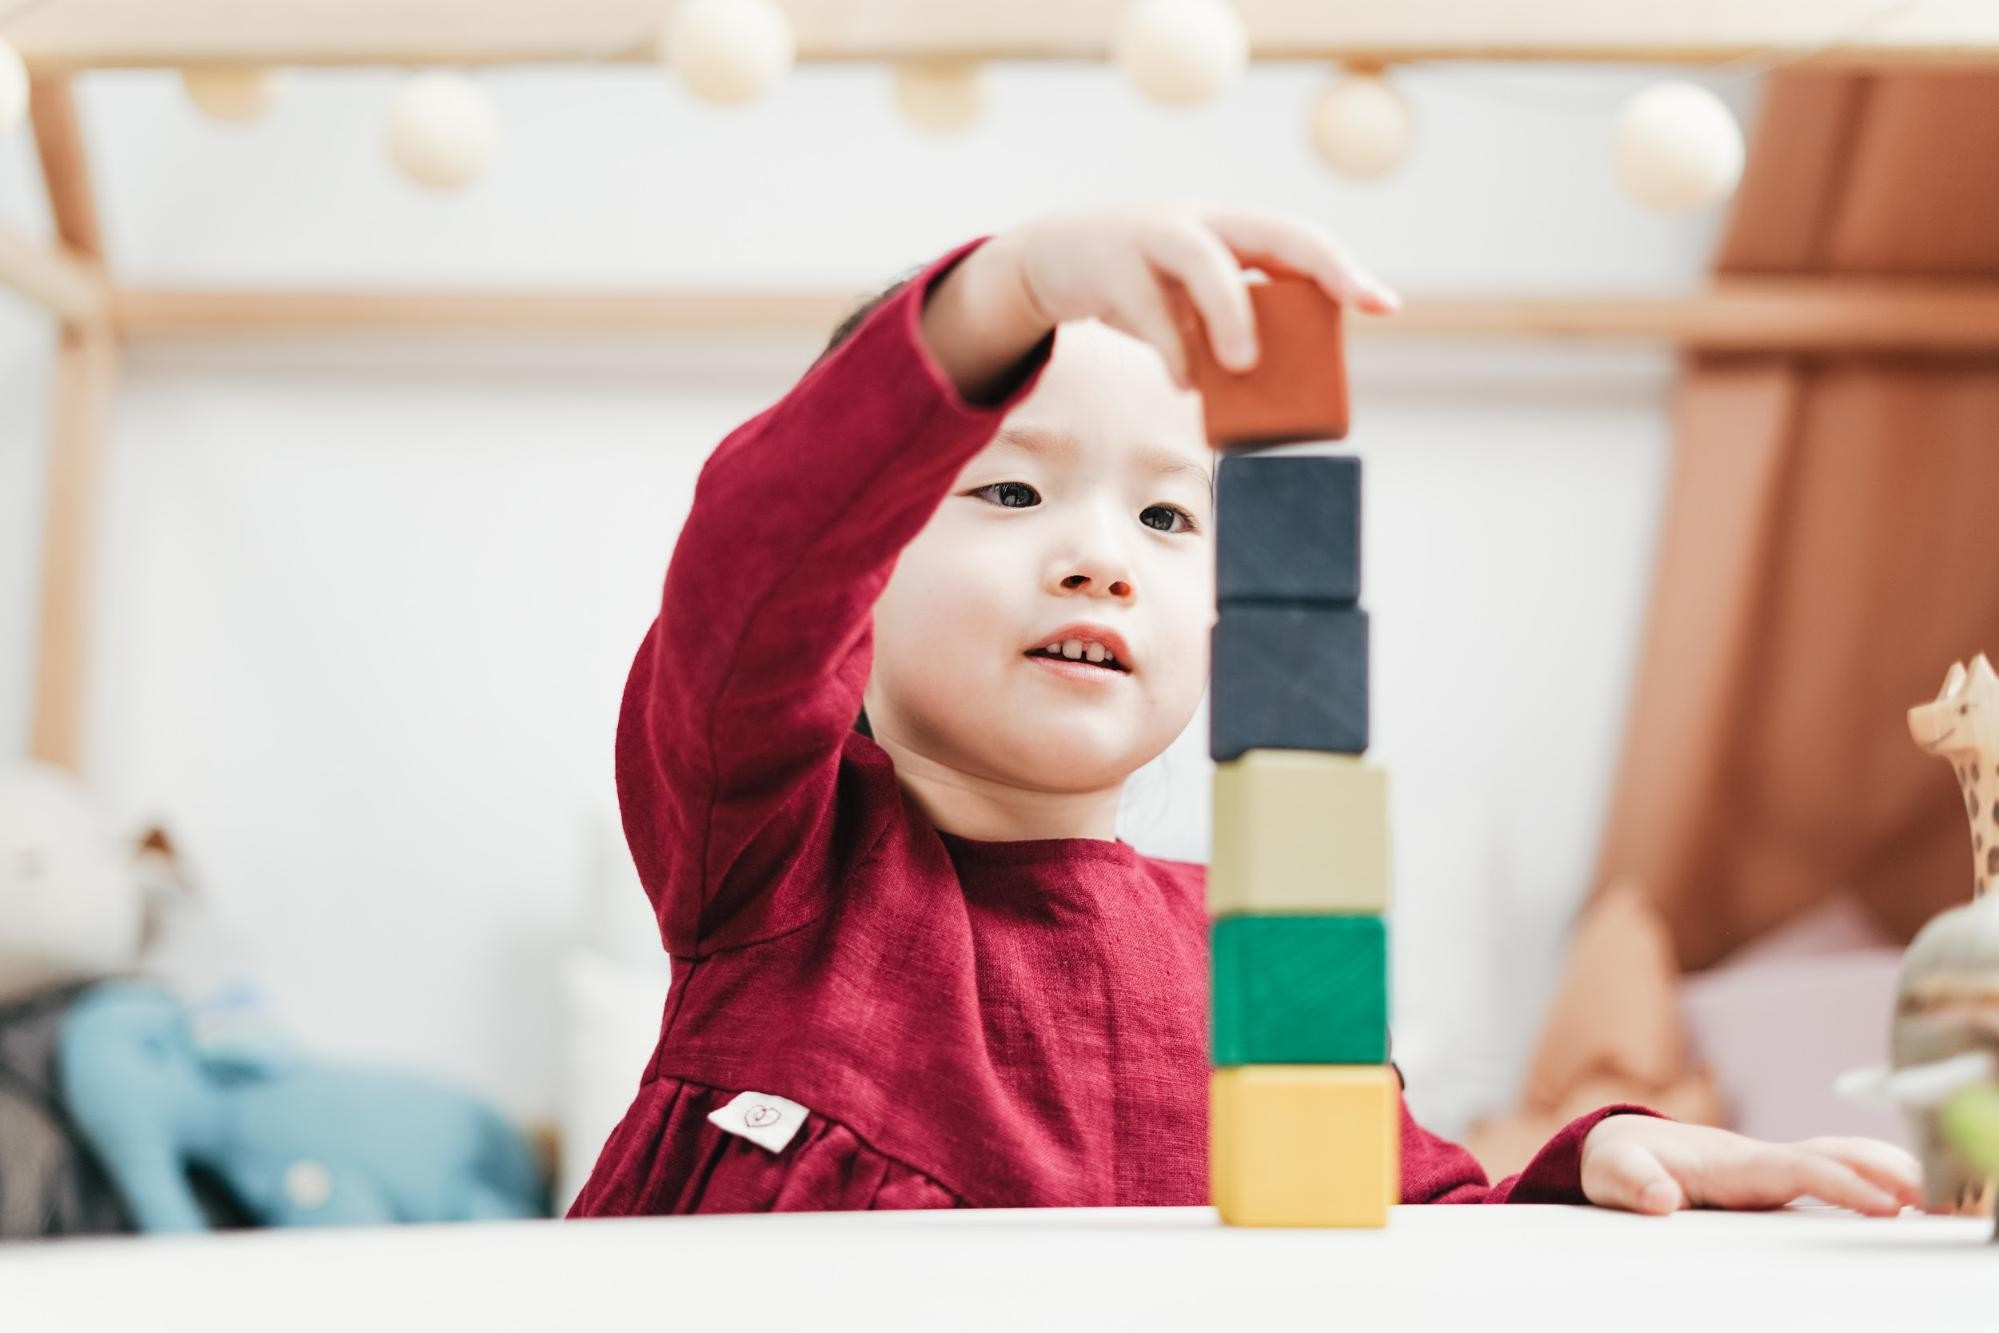 Young child plays with building blocks in the classroom.